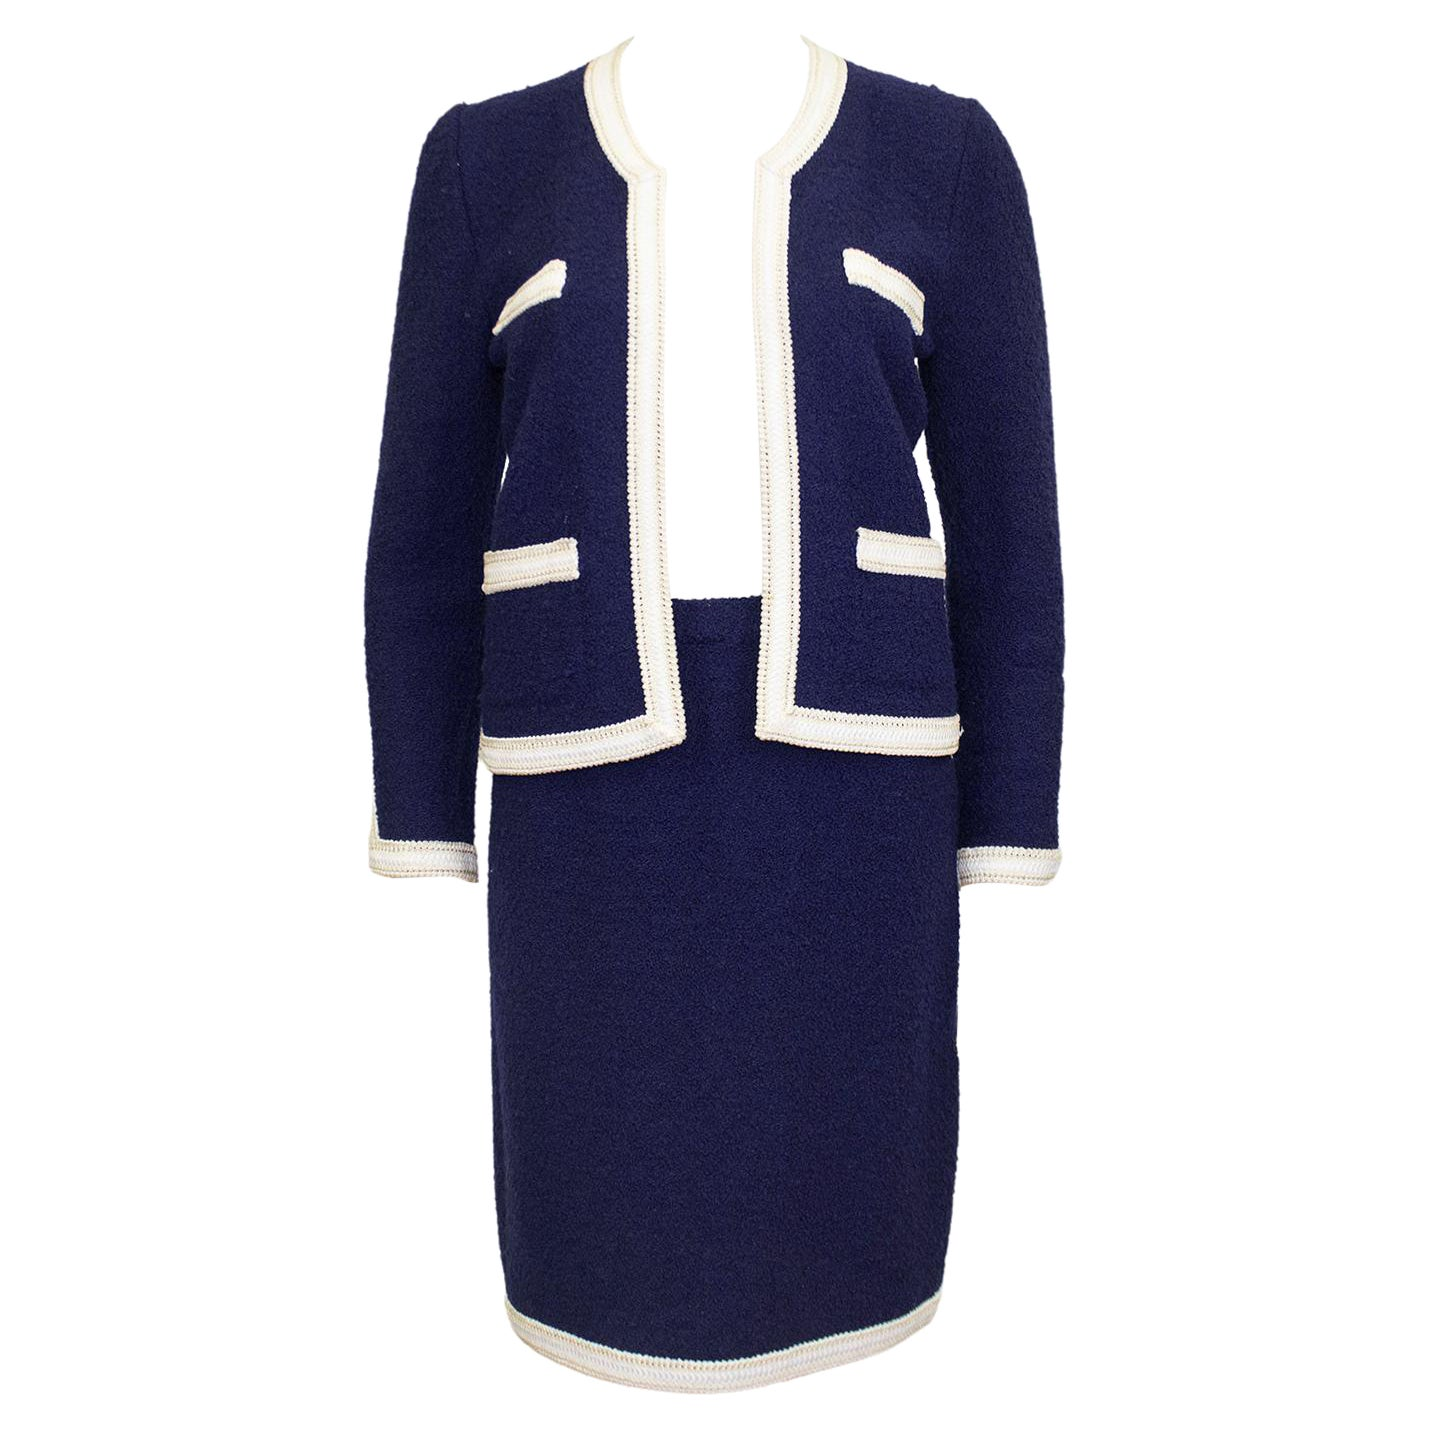 1980s Adolfo Navy Blue and White Knit Skirt Suit